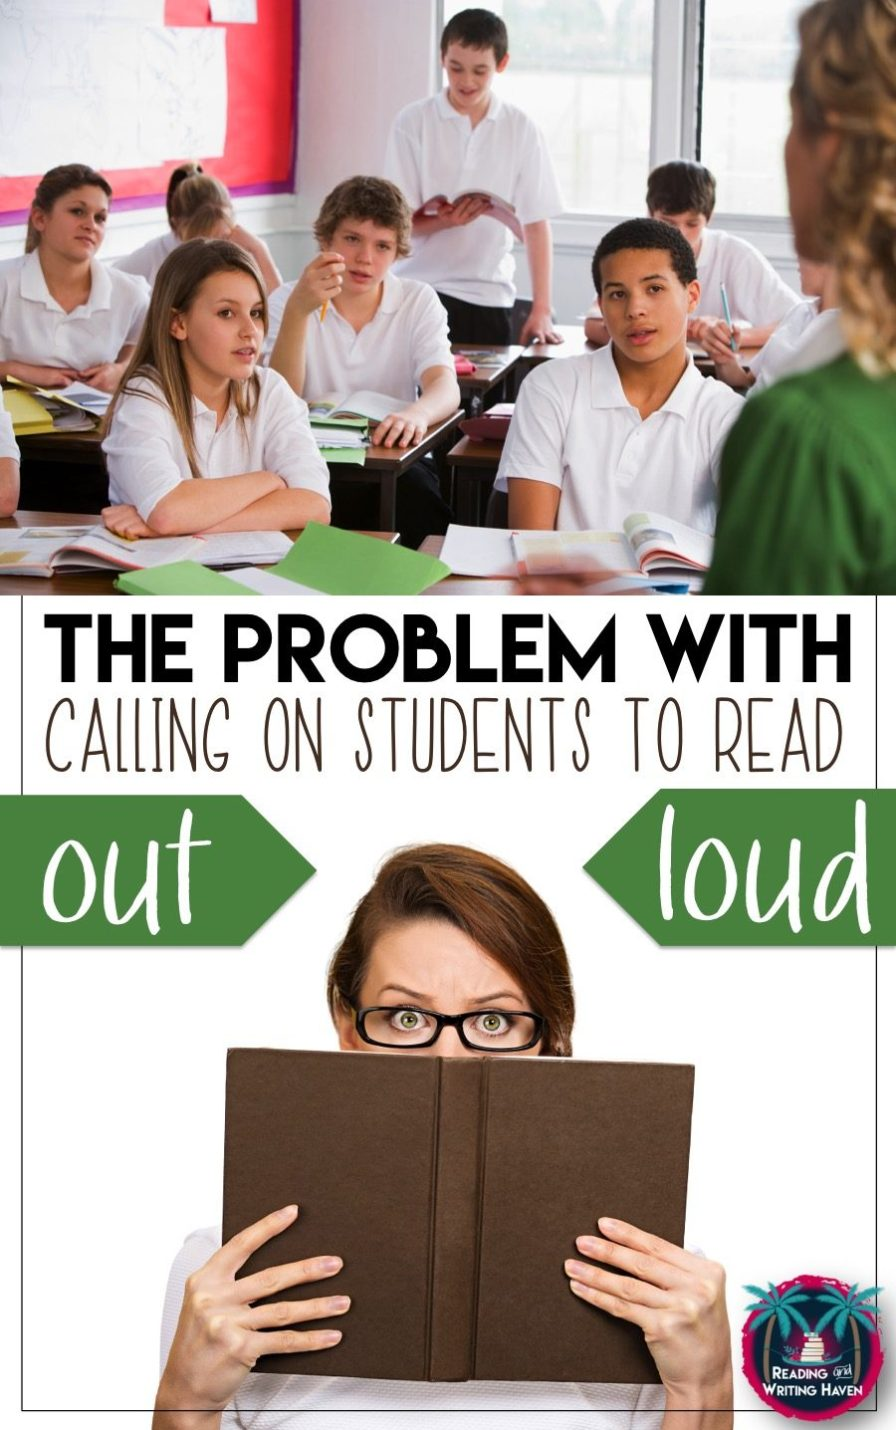 Calling on students to read out loud is fear-inducing for some students. In this post, read about alternatives to calling on students as well as when it's okay to call on them to read.